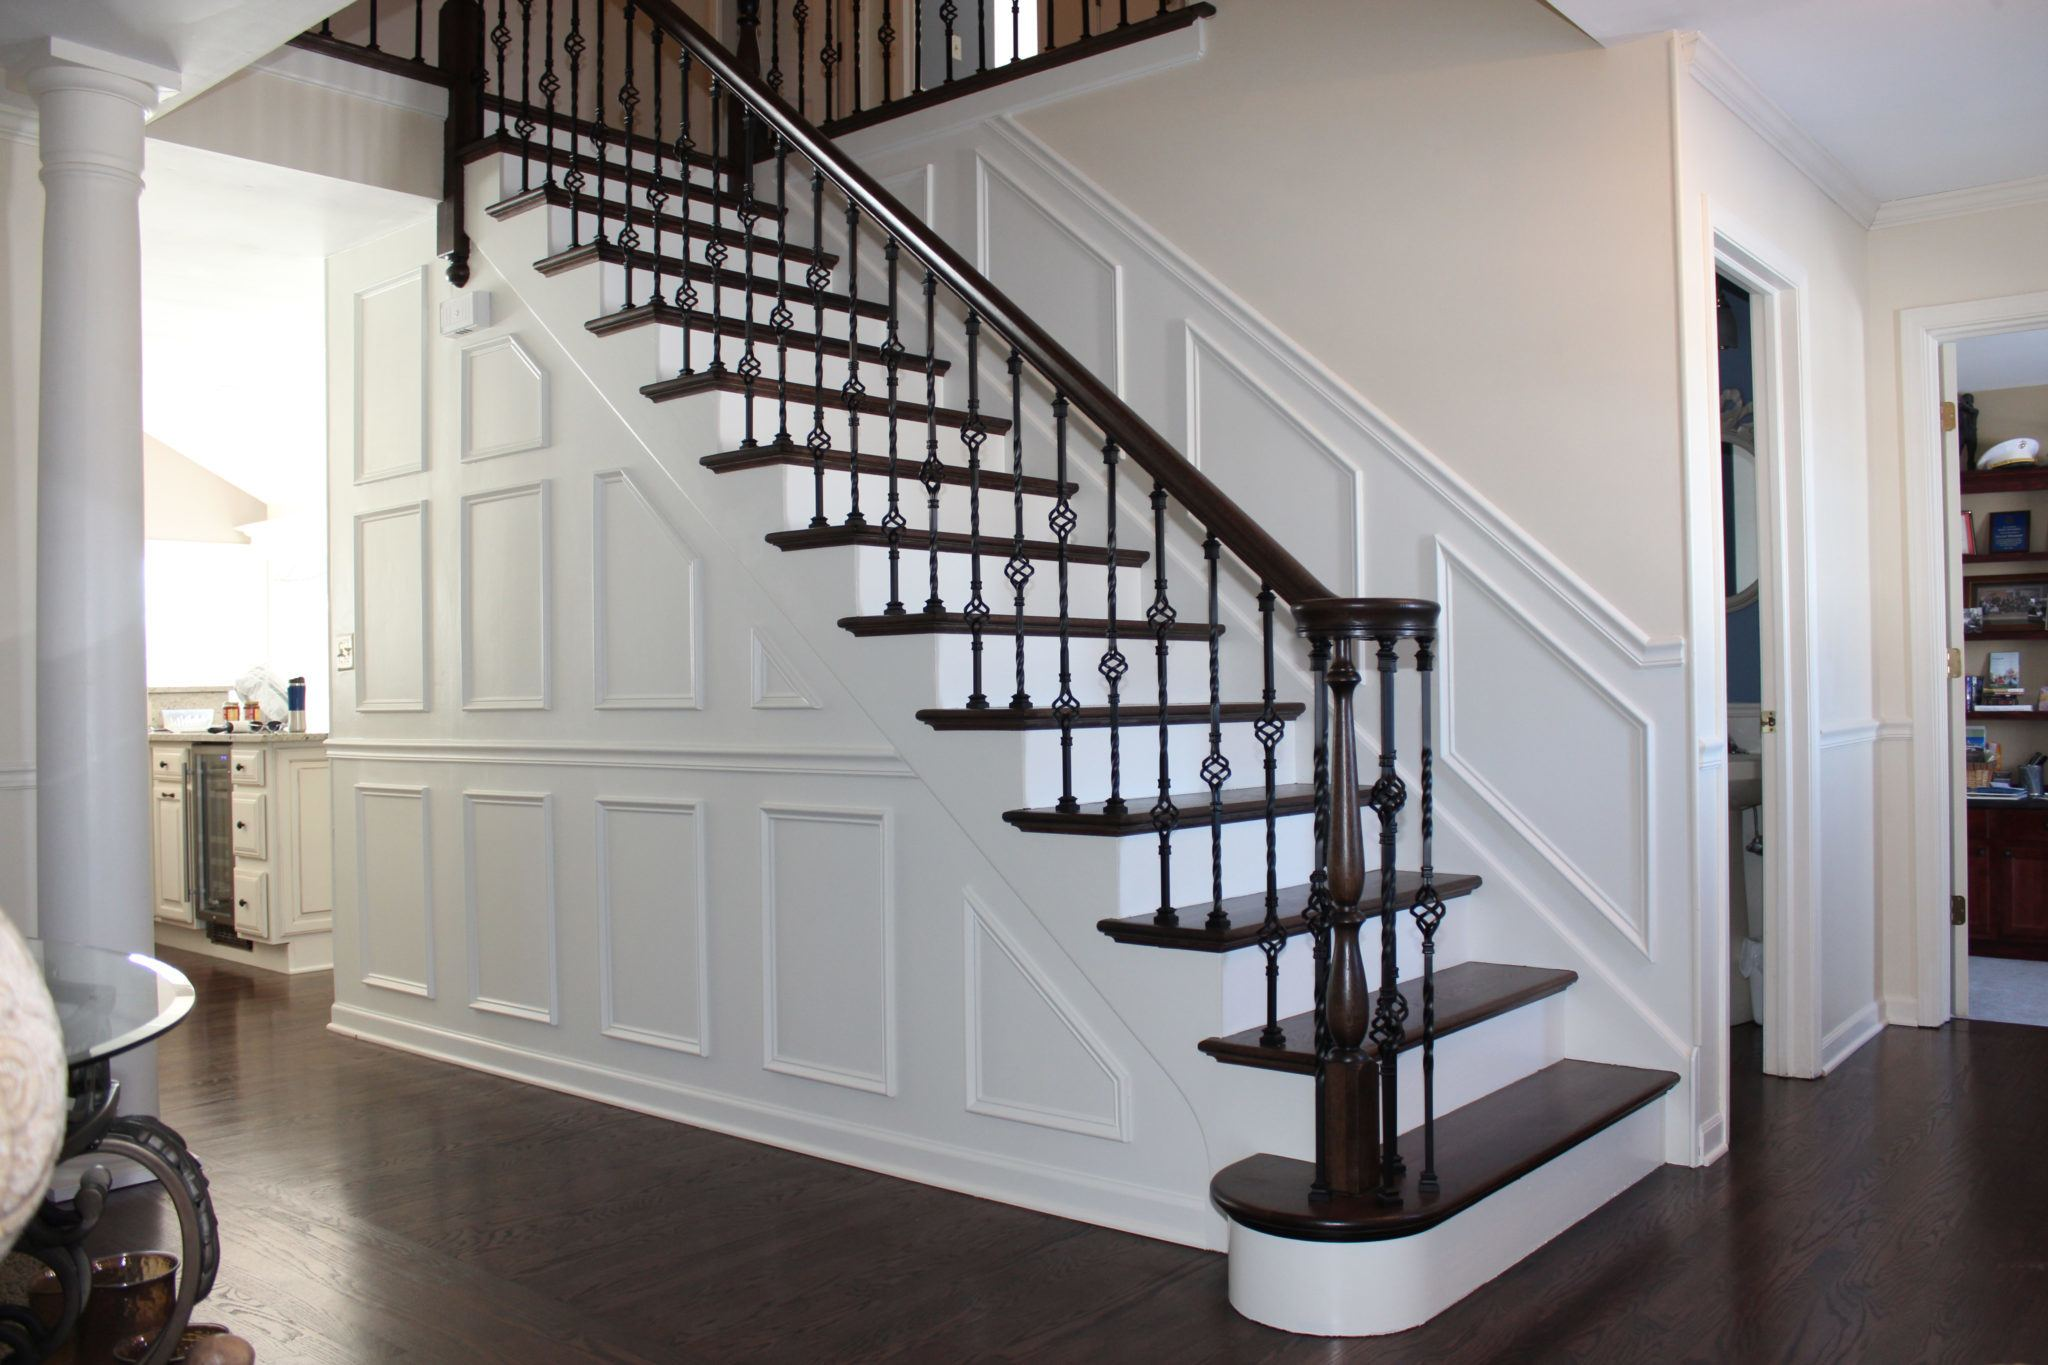 5 Stunning Stairway Trends for Your Home | The Money Pit on home painting designs, home deck designs, home brick designs, home wood designs, home staircase designs, home landscaping designs, home garden designs, home stairway designs, home porch designs, home wall designs, home shelves designs, home walkway designs, home porches designs, home building designs, home trellis designs, home park designs, home vinyl designs, home decking designs, home glass designs, home architectural designs,